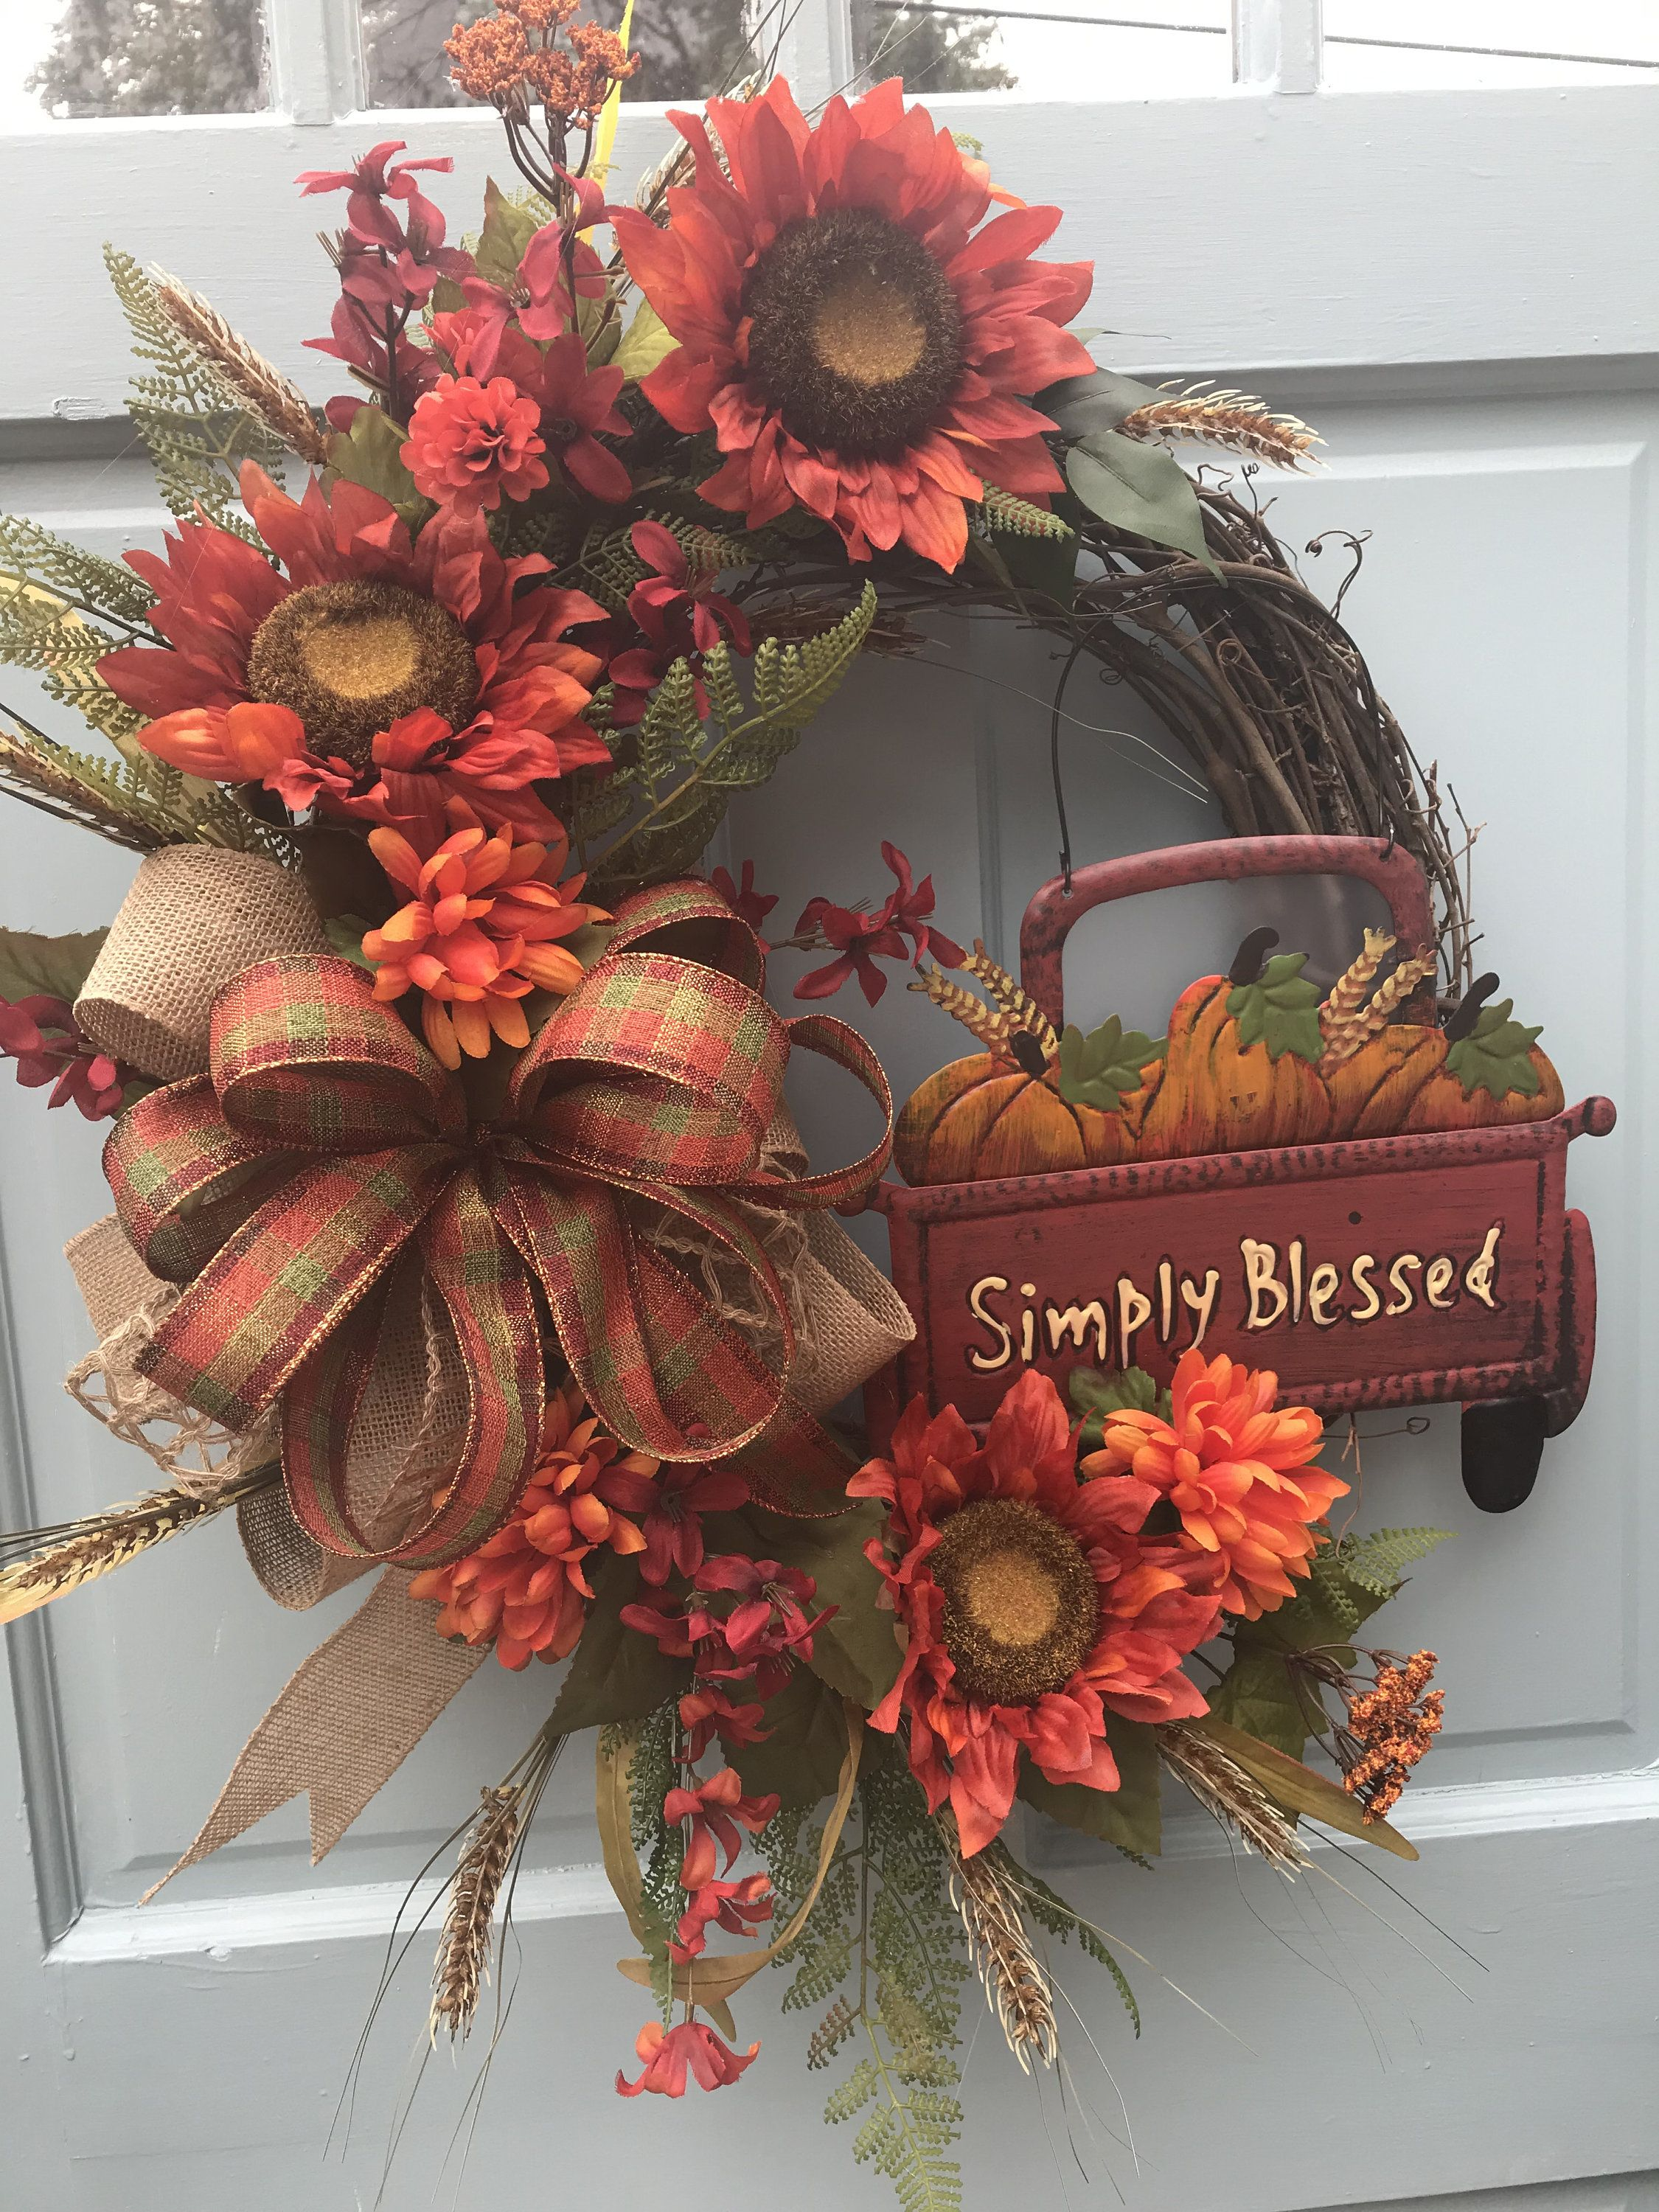 Photo of Fall Red Truck with pumpkins wreath for front door, Autumn  Floral Grapevine Wreath for Door, Friends wreath for front door, pumpkin wreath,